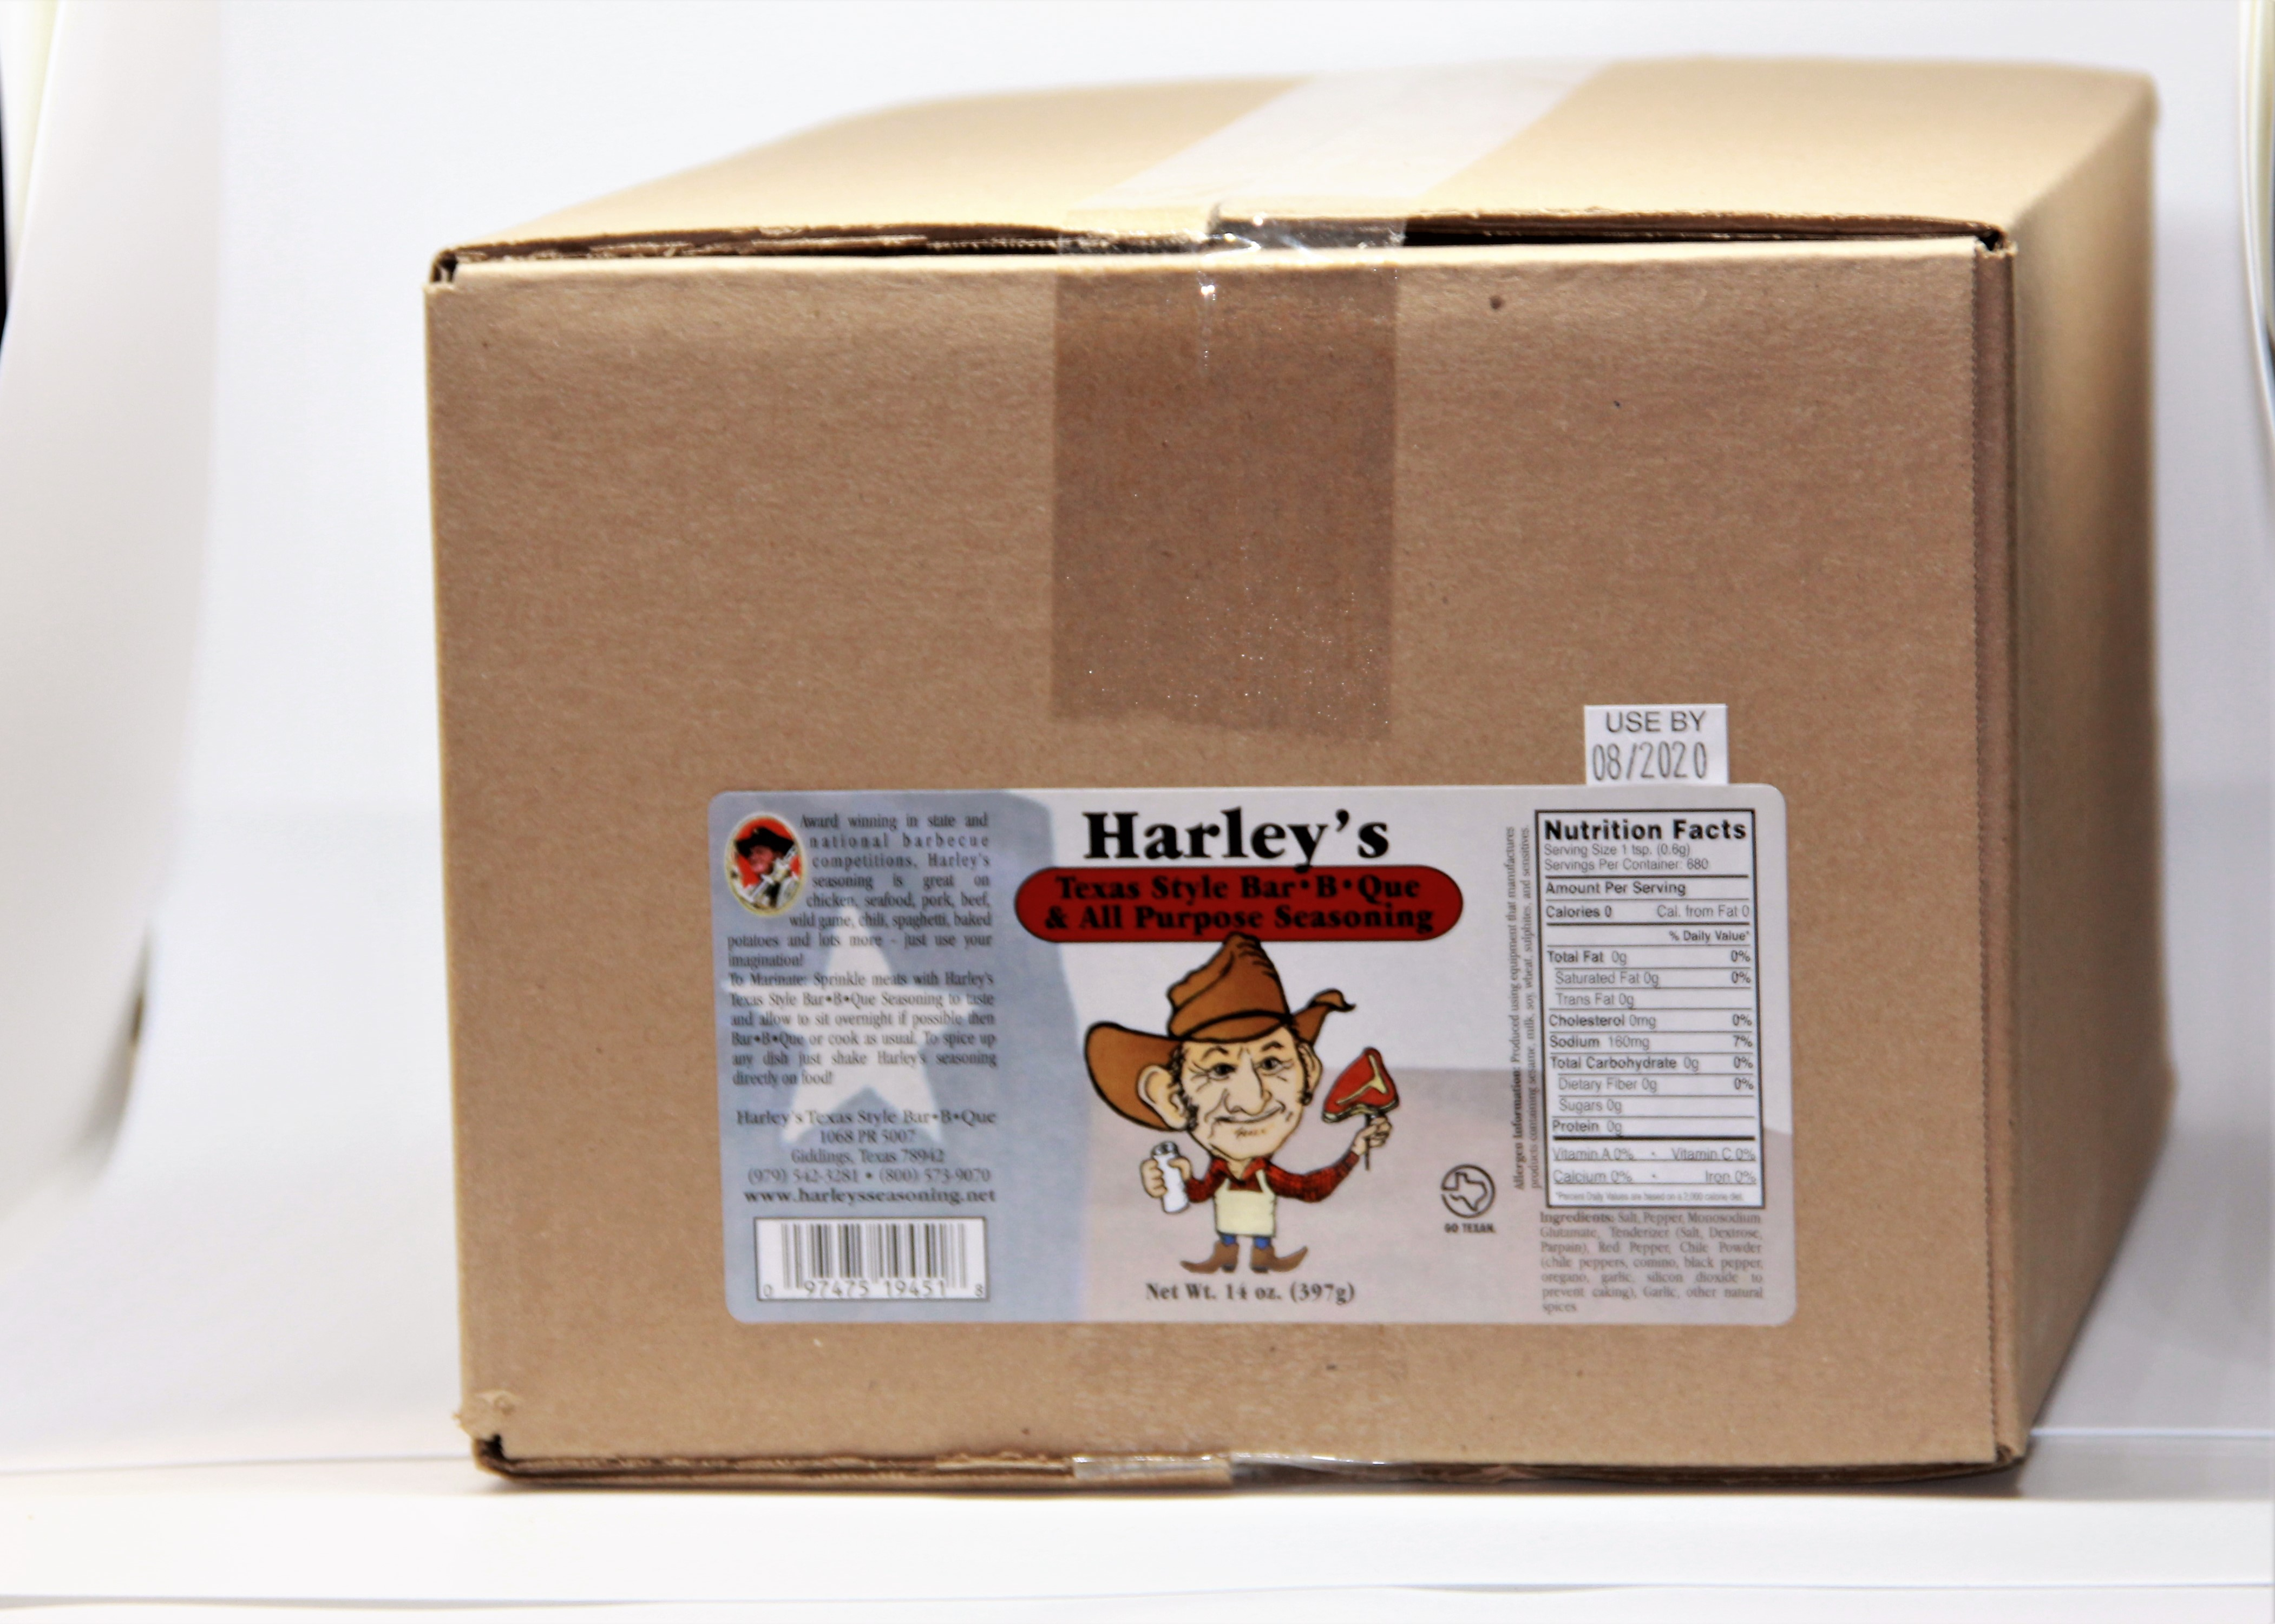 Harley's Original Seasoning (Size: Case of 14 oz bottles (12 bottles))